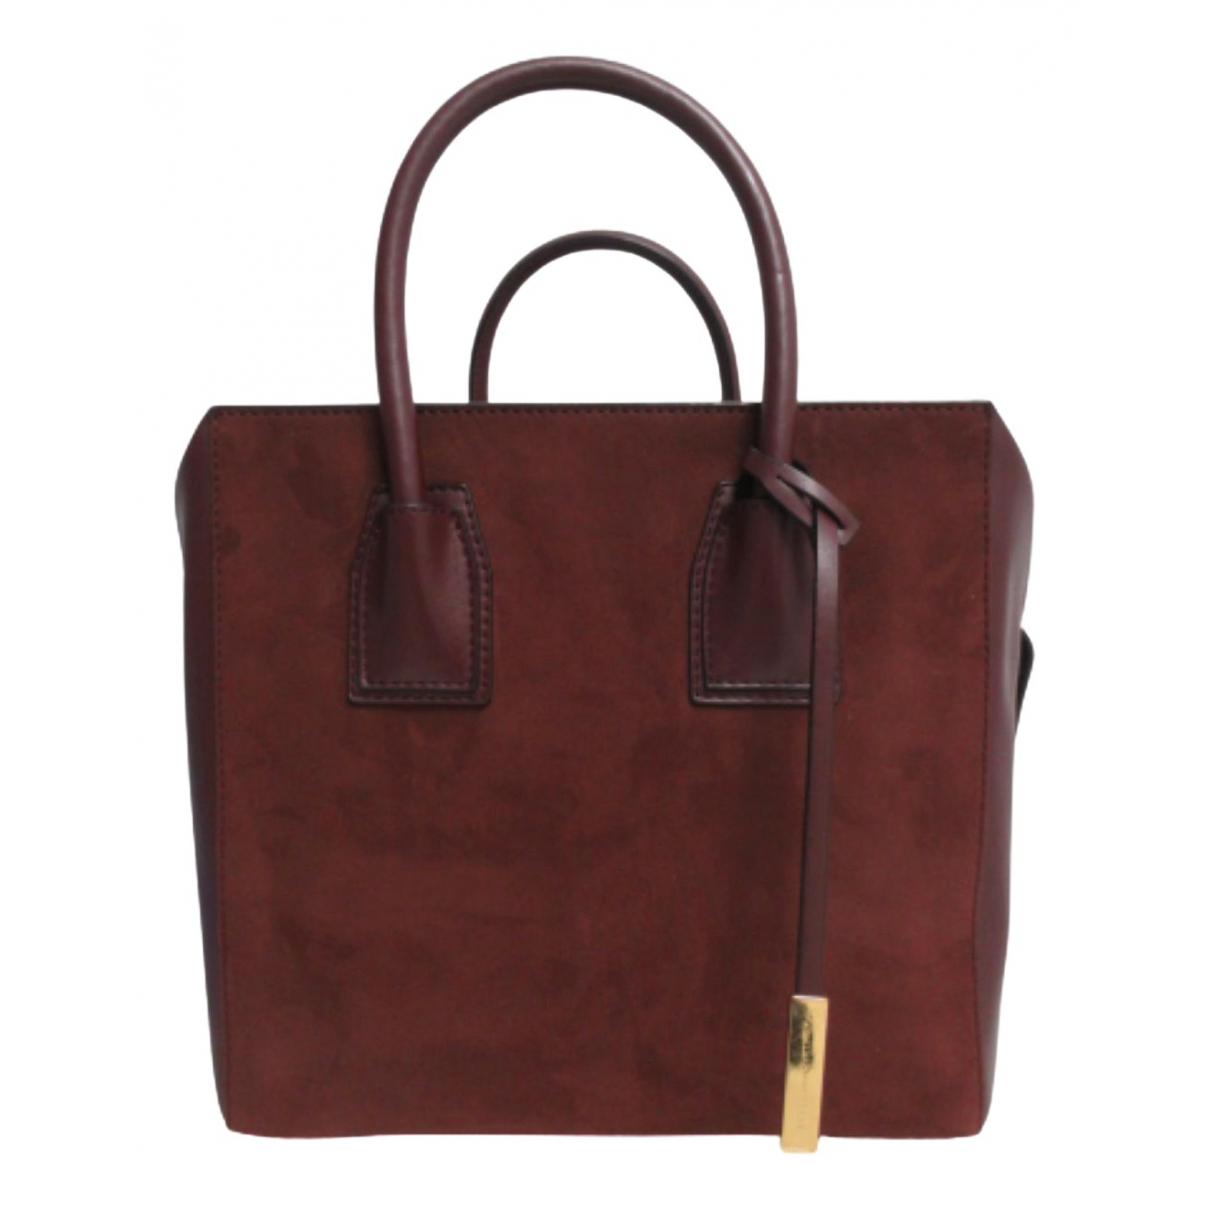 Stella Mccartney Cavendish Handtasche in  Bordeauxrot Leinen